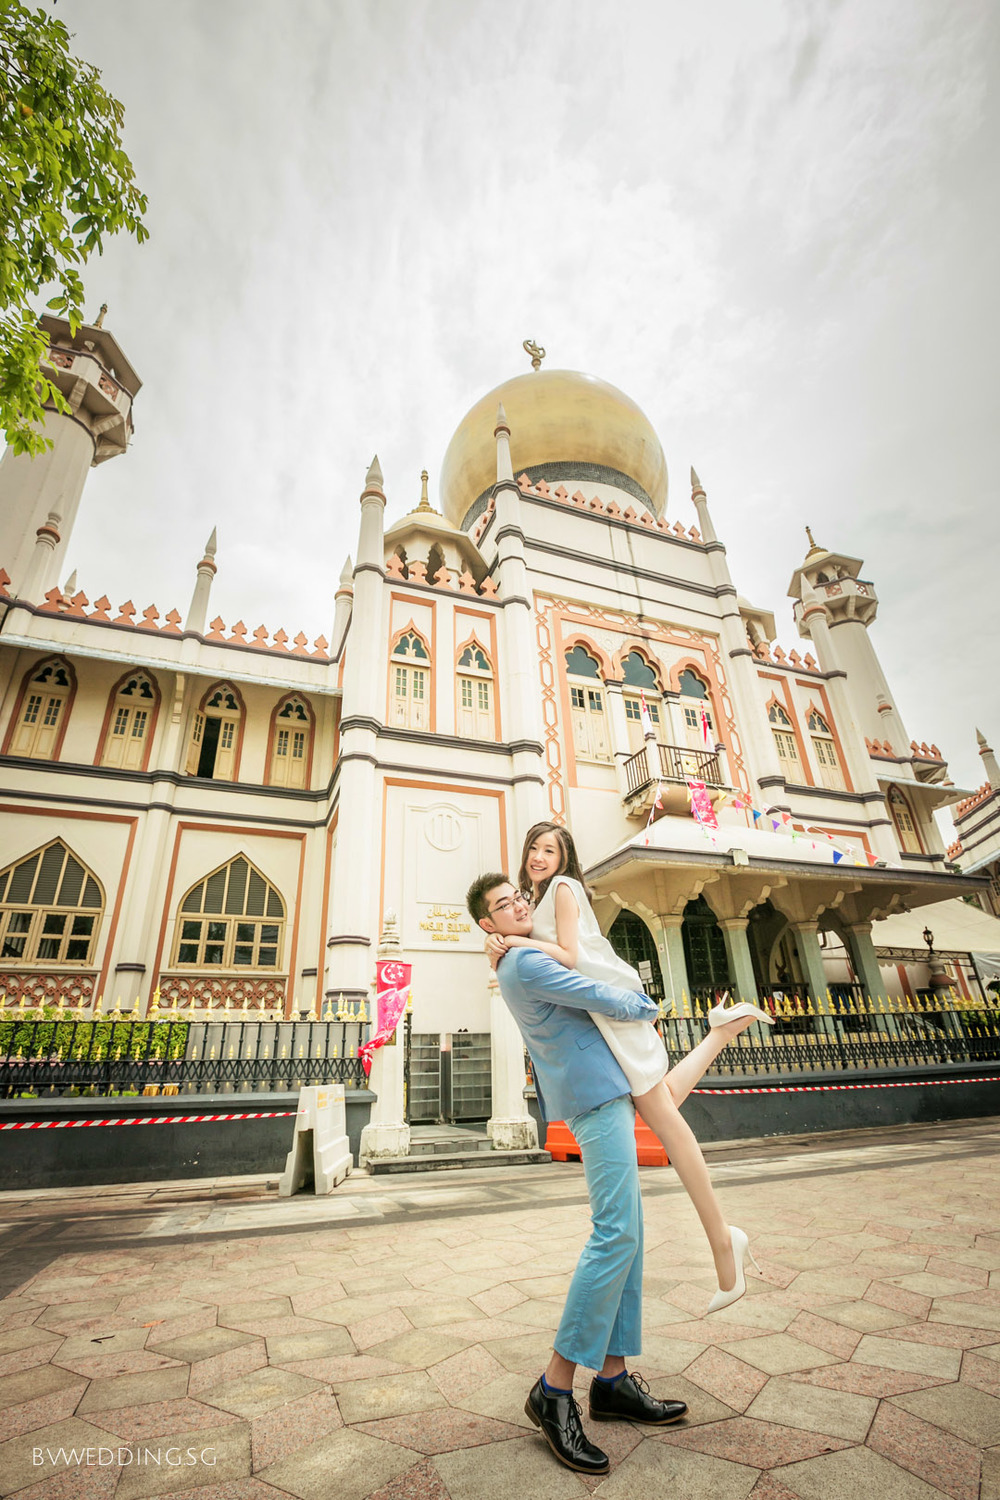 Casual couple photoshoot at sultan mosque